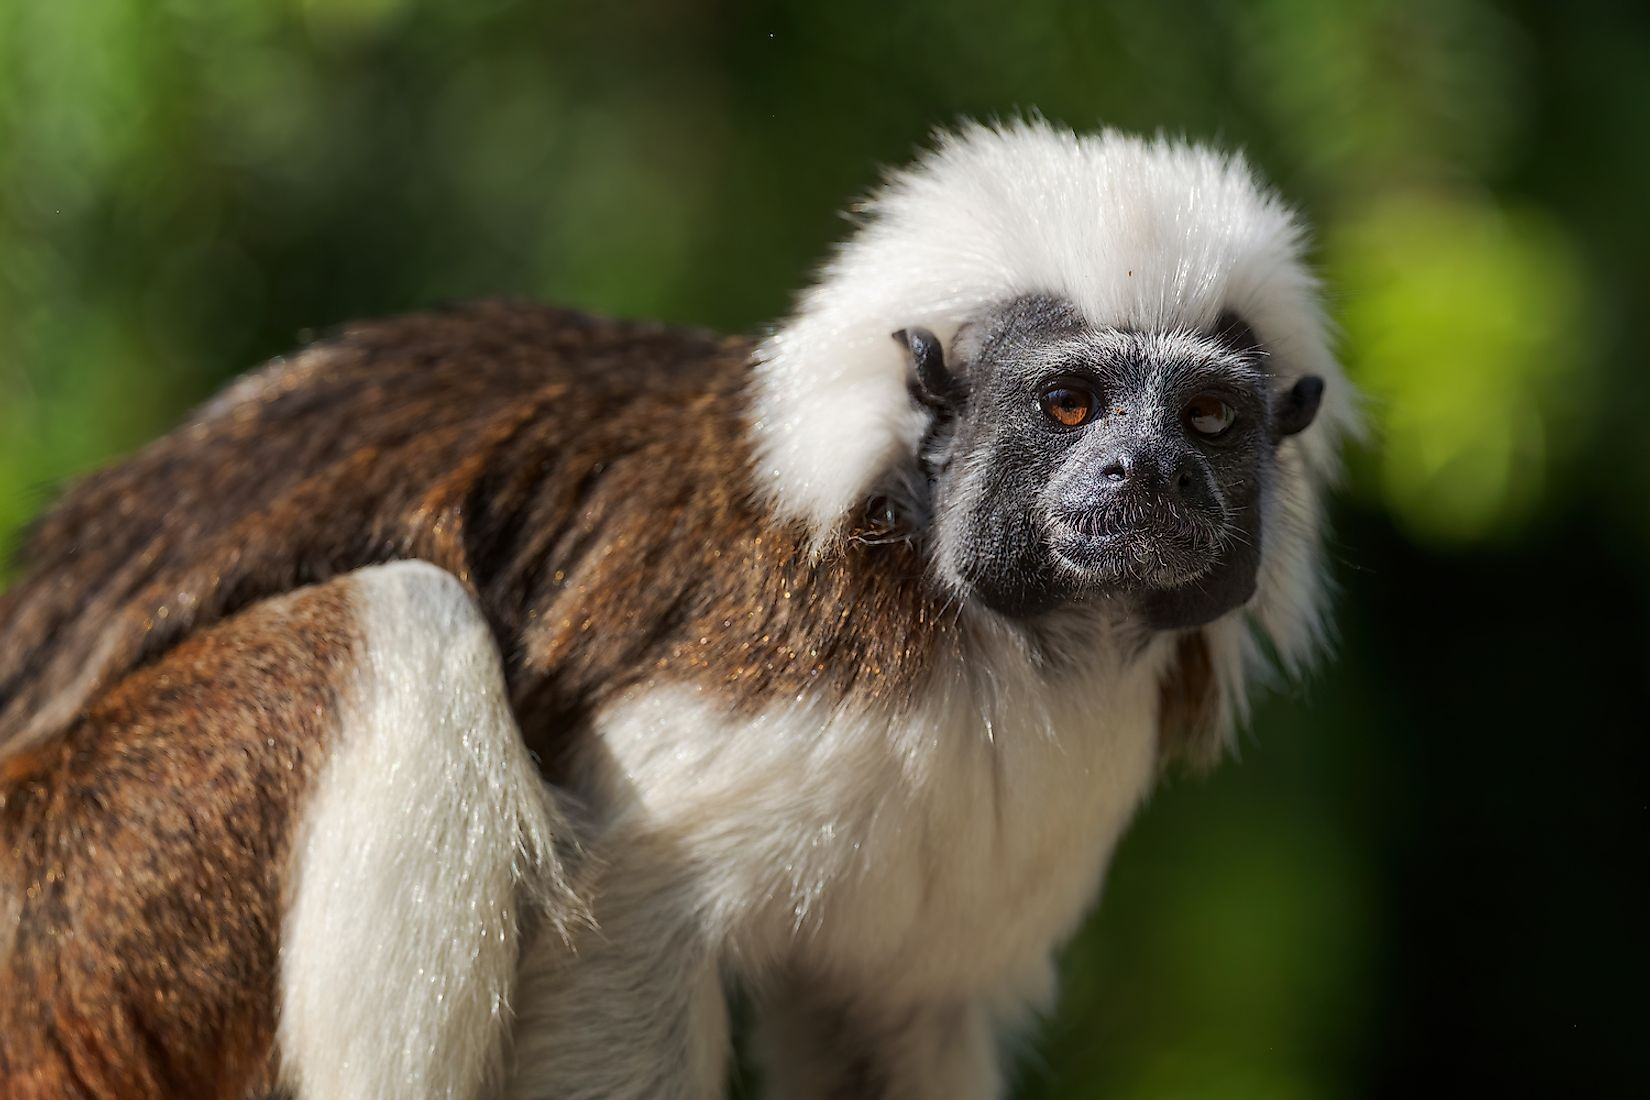 Cotton top tamarin from the forests of Colombia. Image credit: David Havel/Shutterstock.com